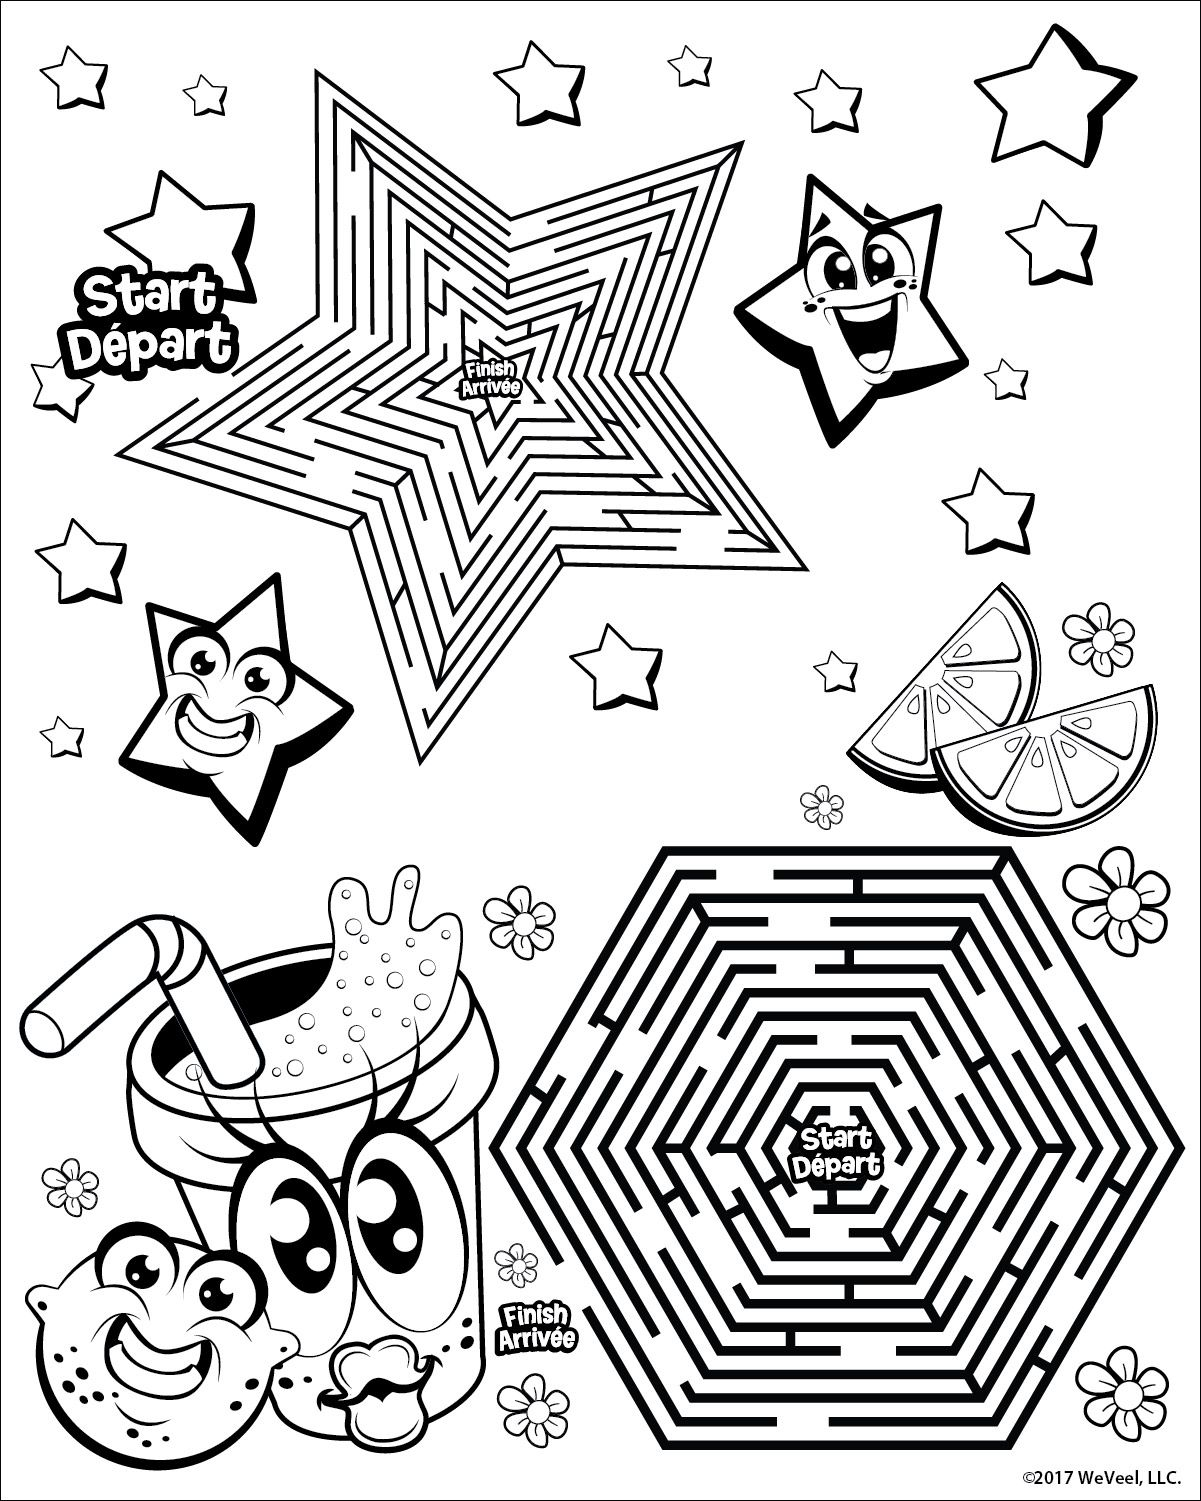 Free printable coloring games at scentos.com Cute coloring game ...